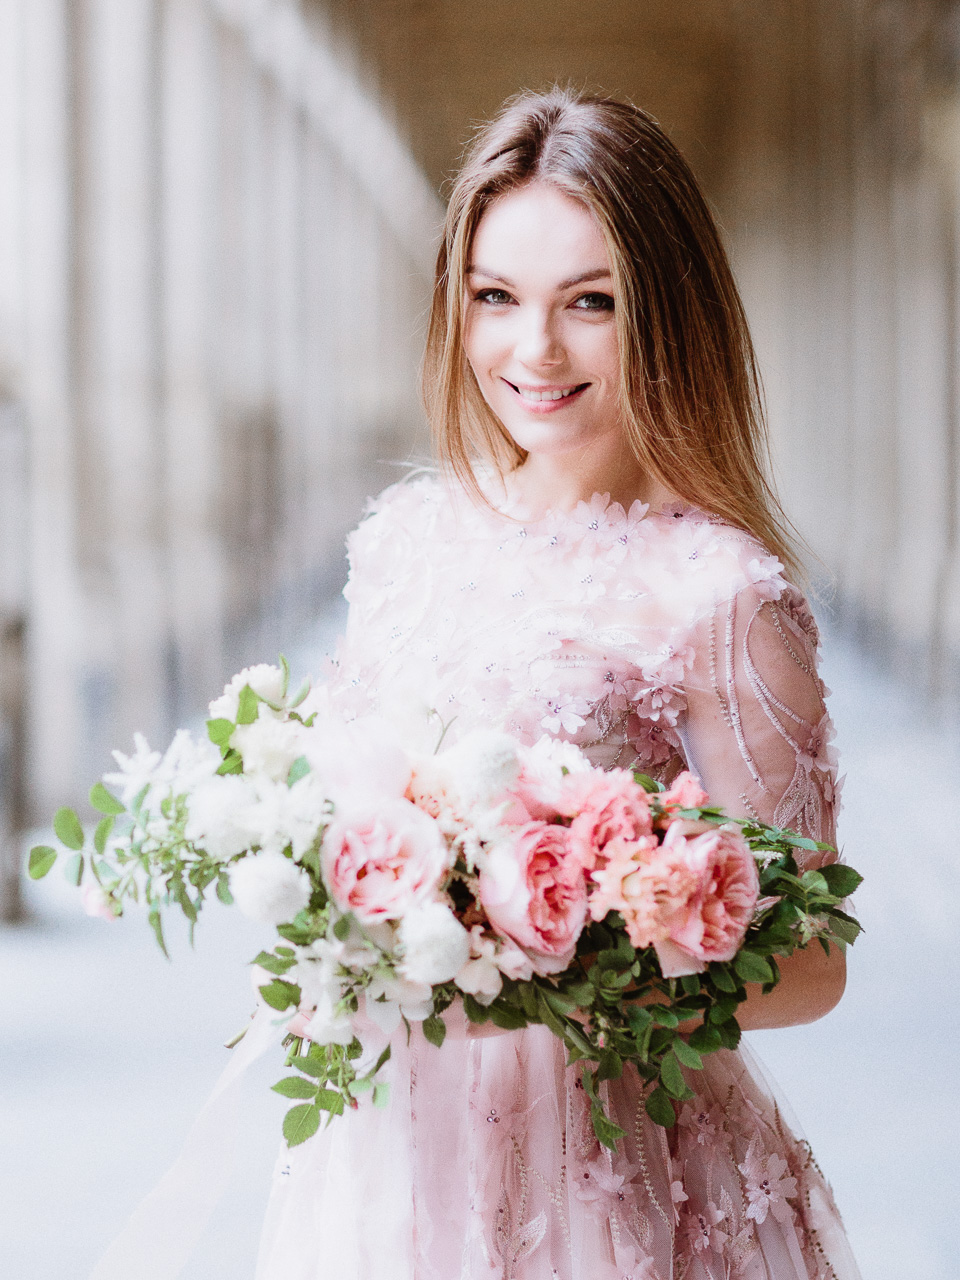 stunning-bride-with-bouquet-paris.jpg